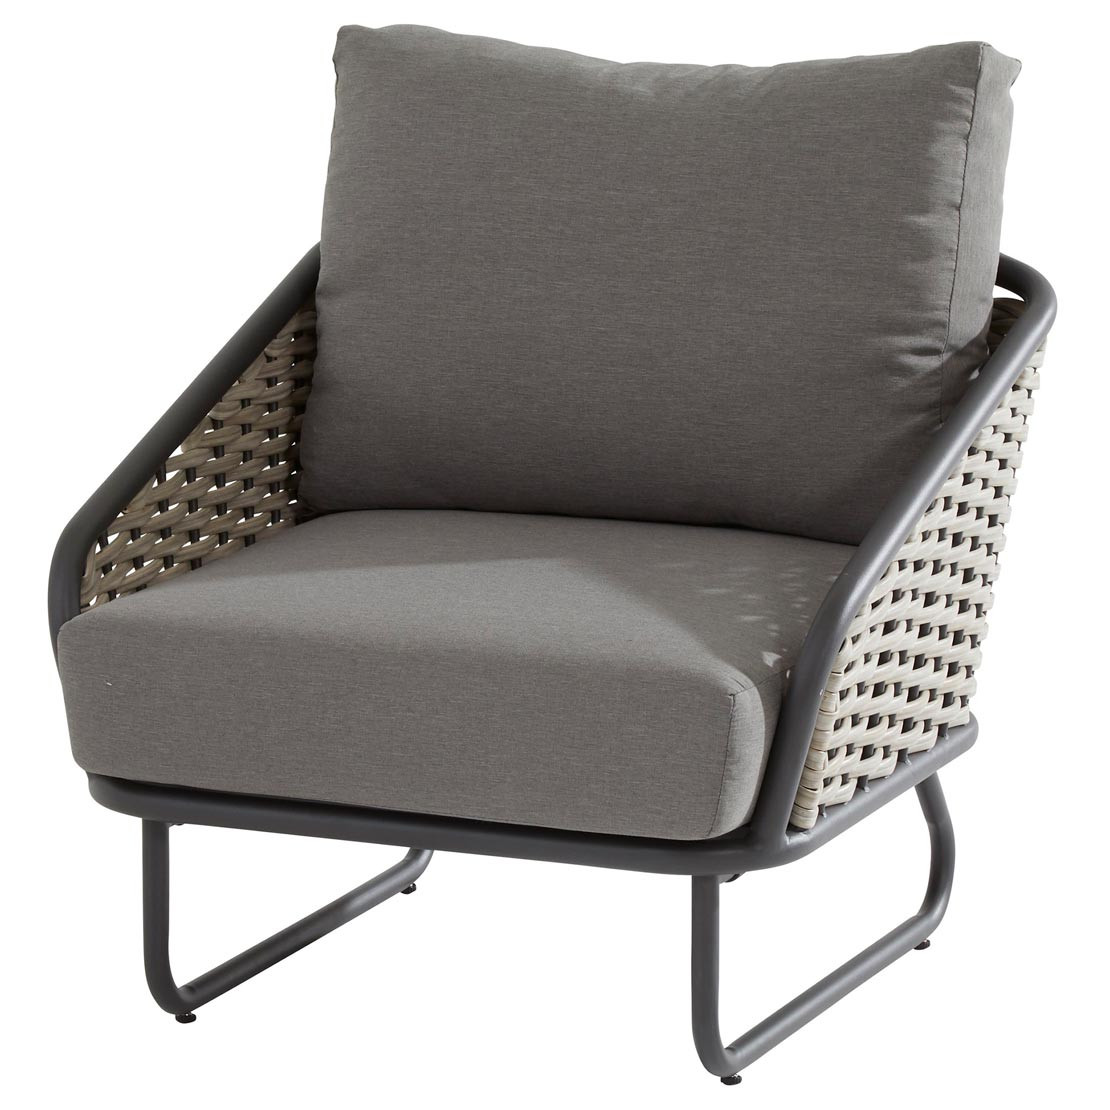 Bo living chair with 2 cushions